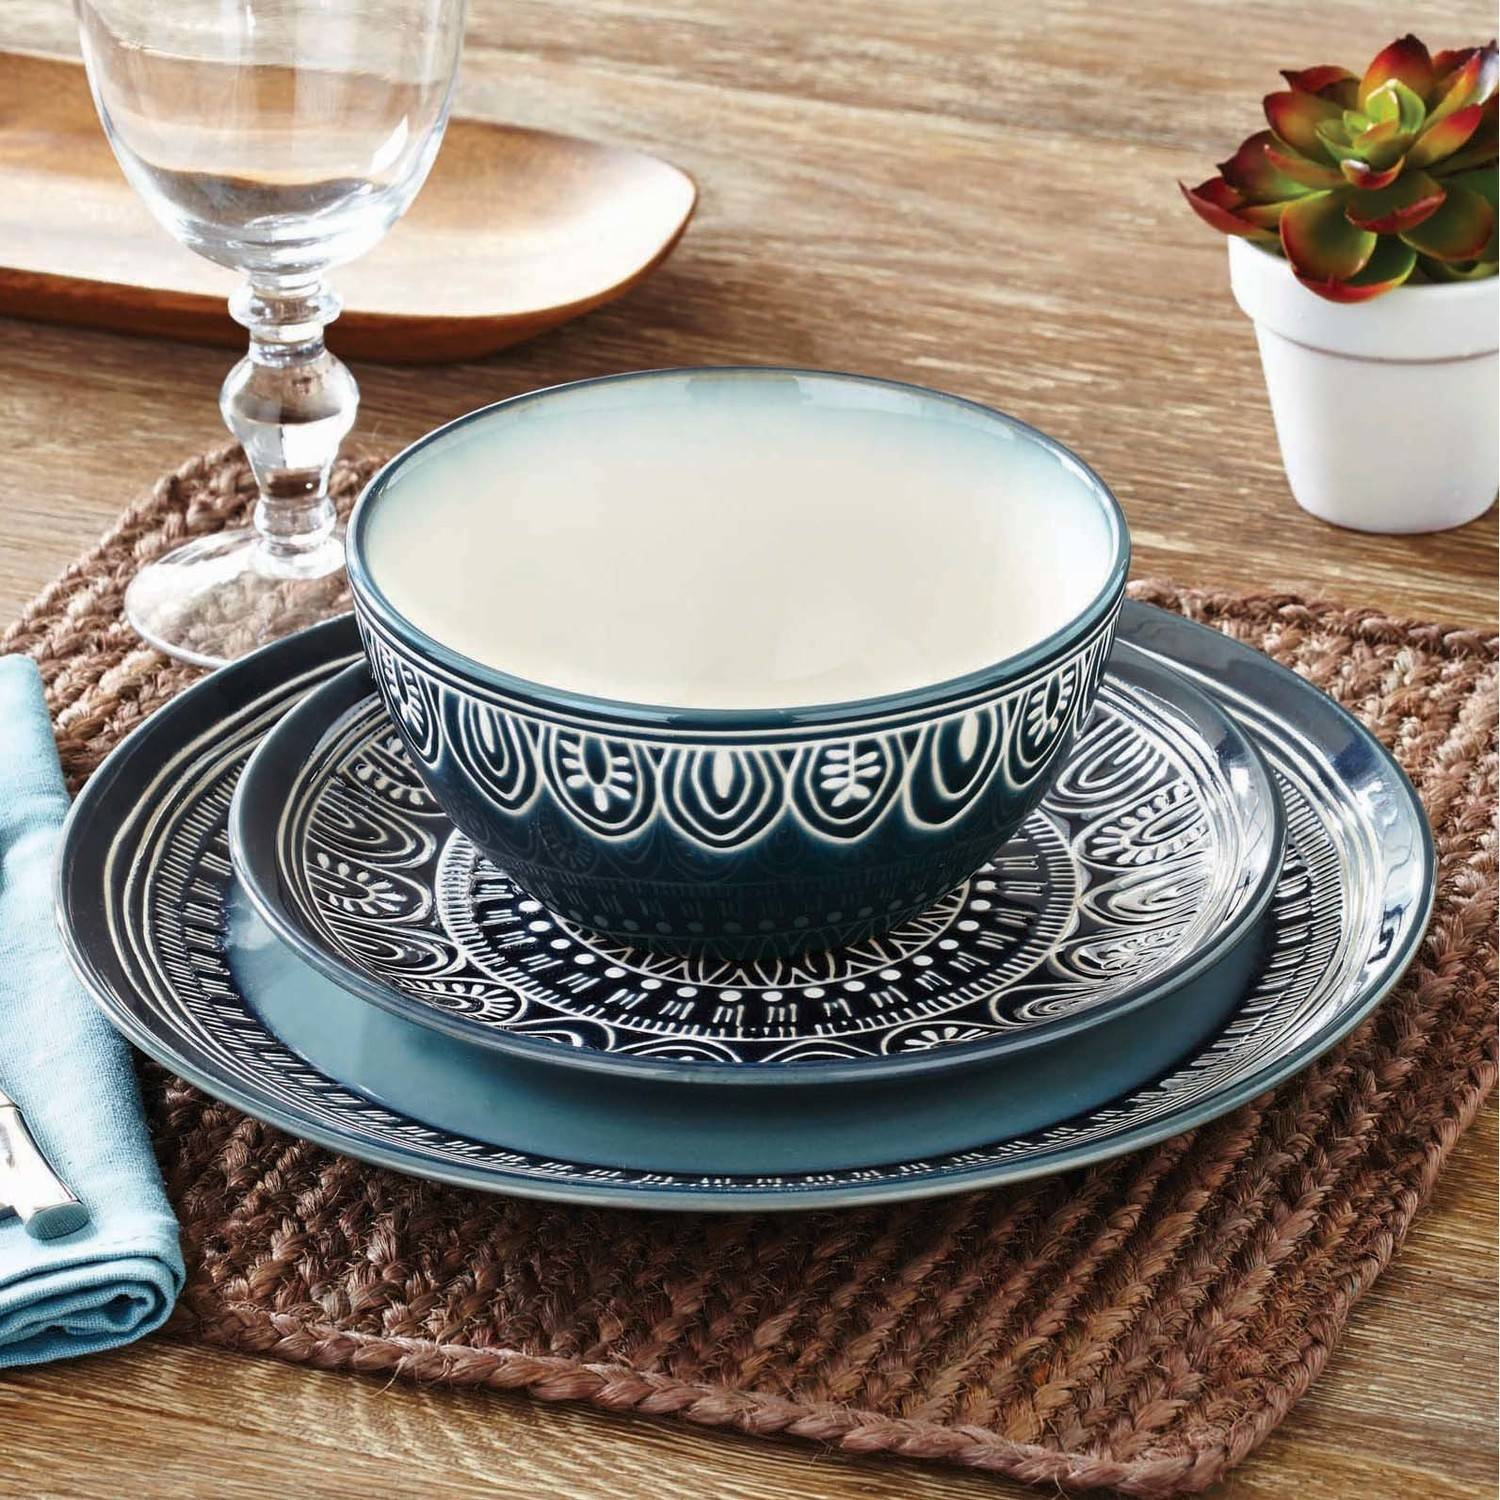 Better Homes and Gardens Teal Medallion 12 Piece Dinnerware Set